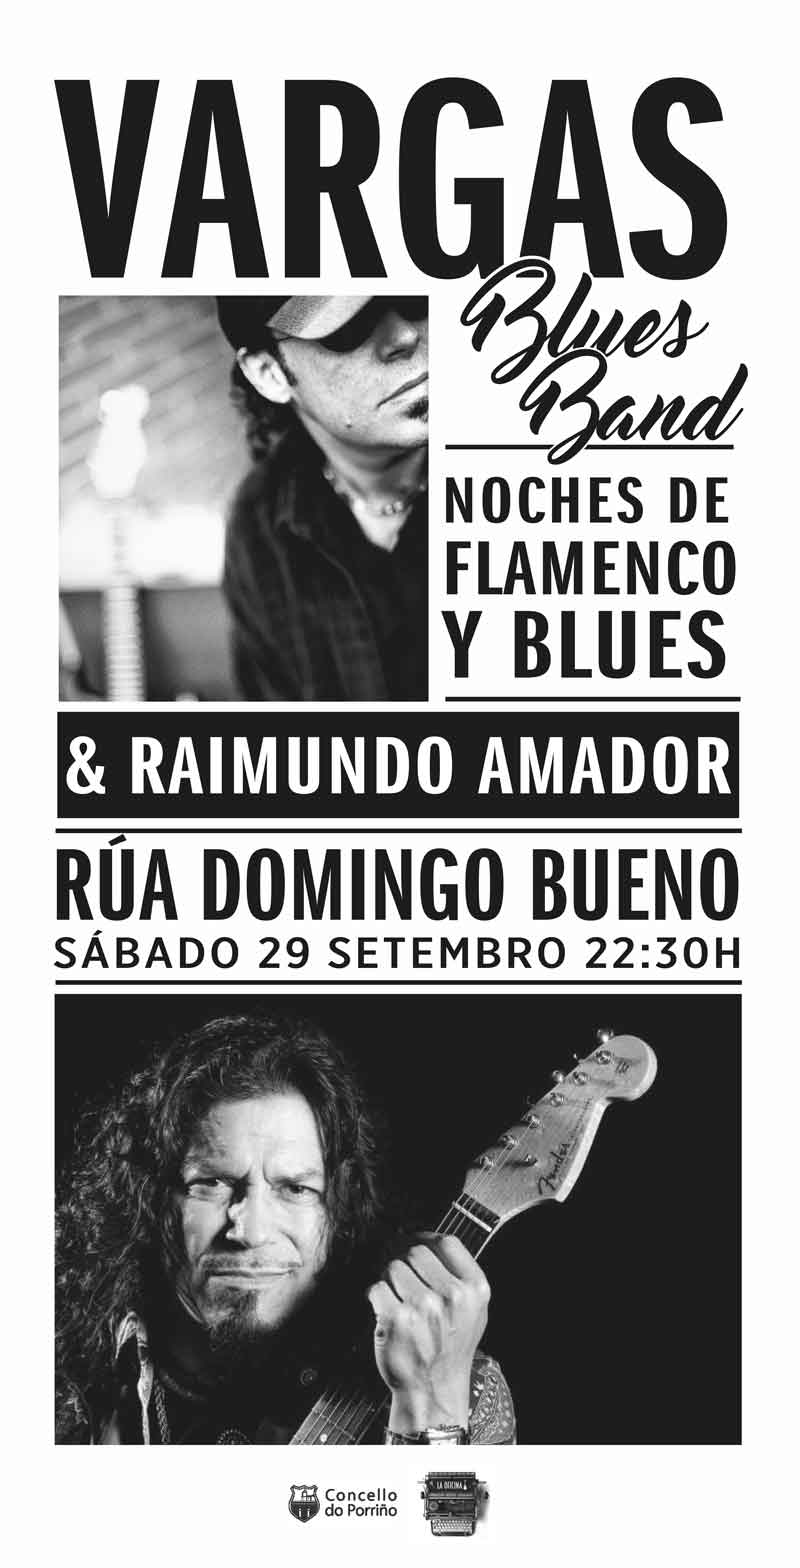 Cartel concerto Vargas Blues Band e Raimundo Amador